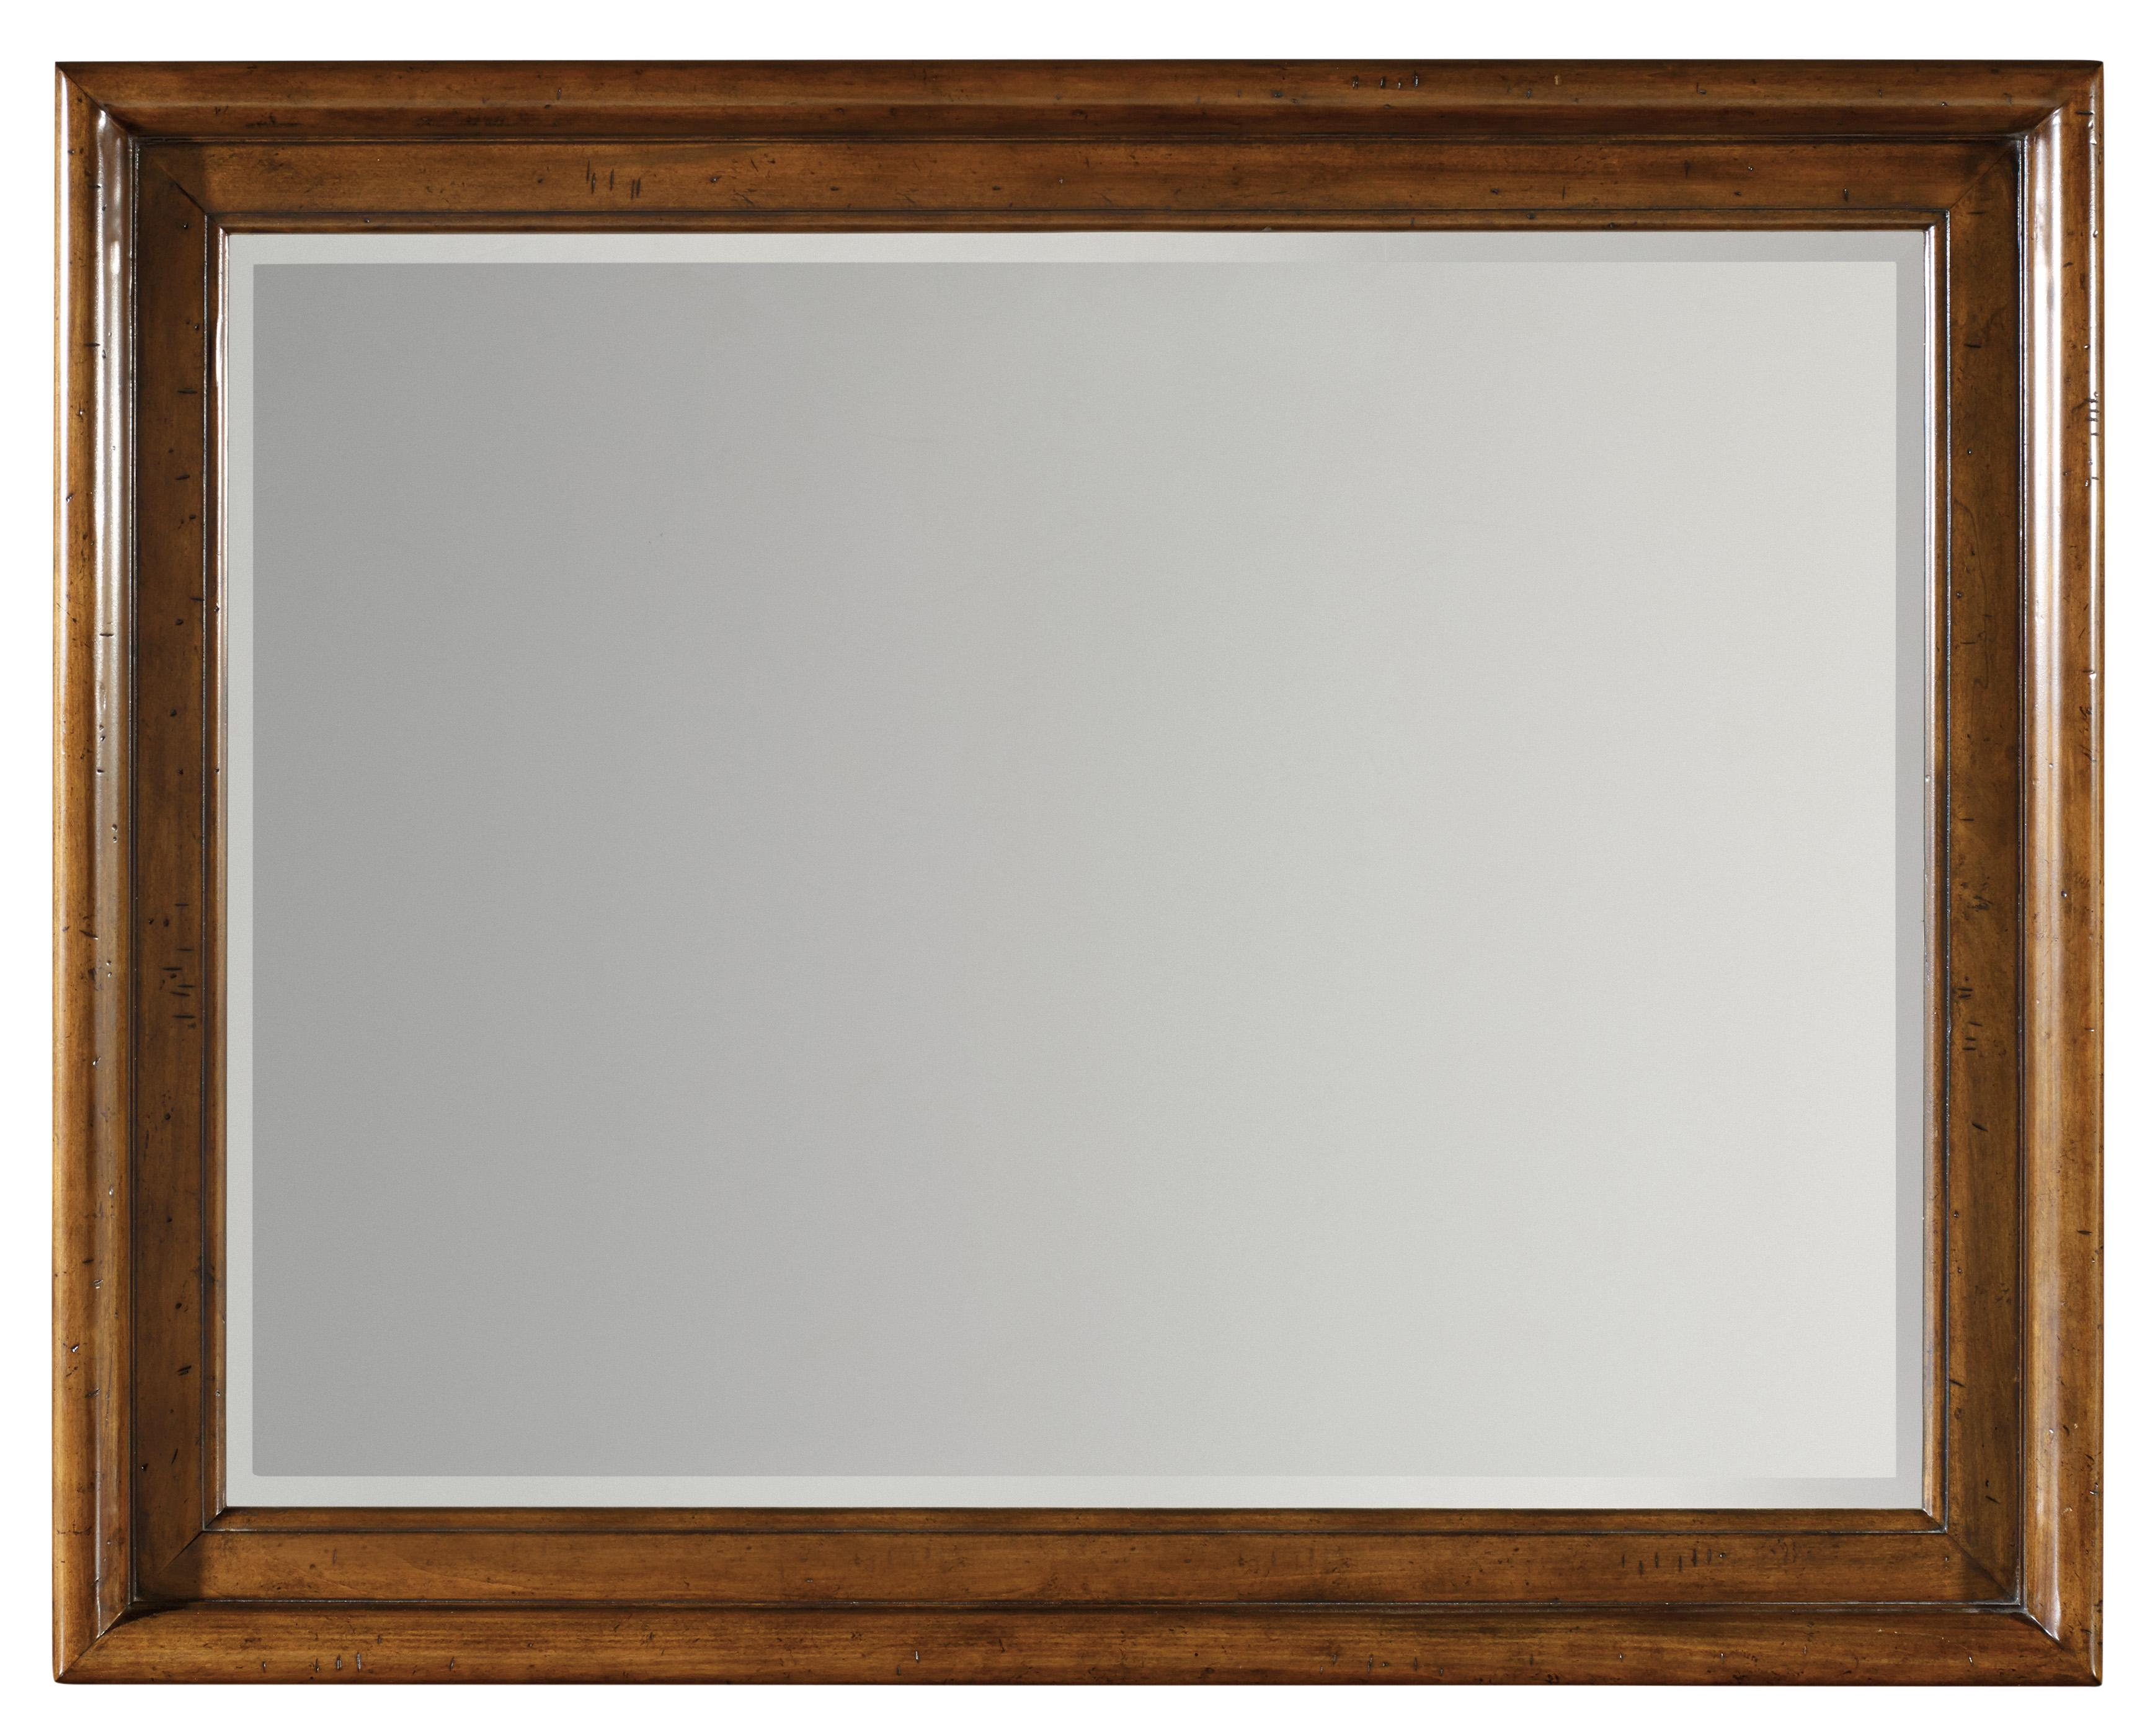 Hooker Furniture Tynecastle Mirror - Item Number: 5323-90008